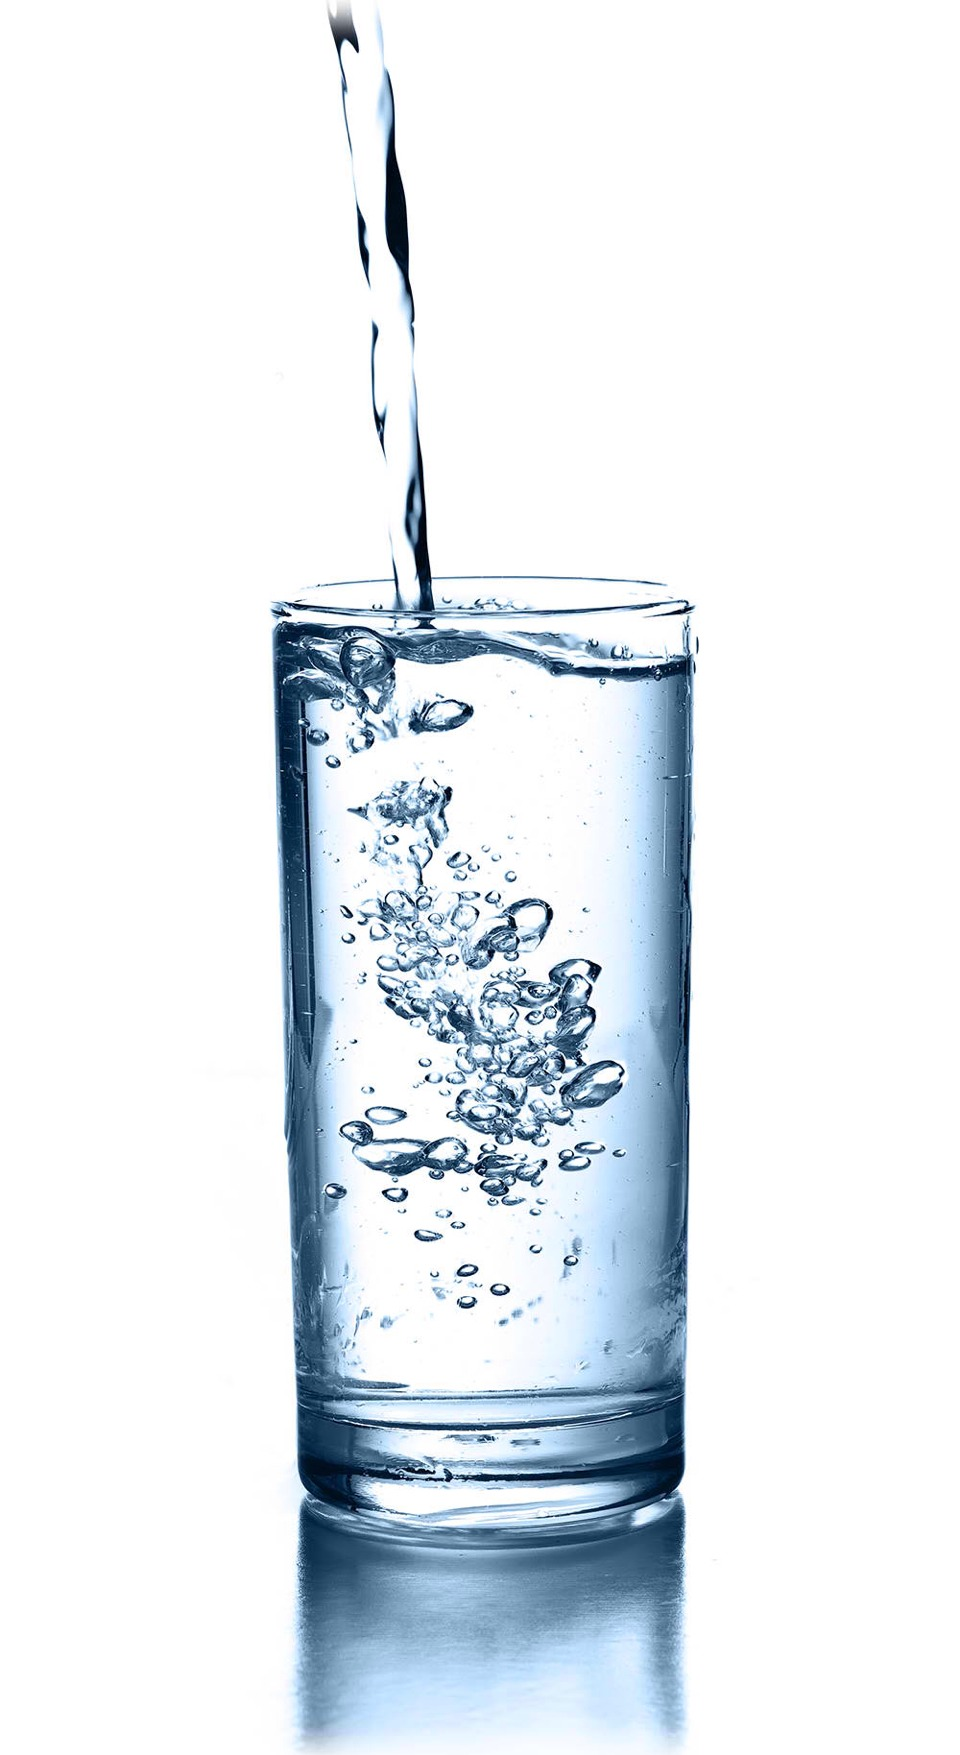 drink at least 8 glasses if water everyday.